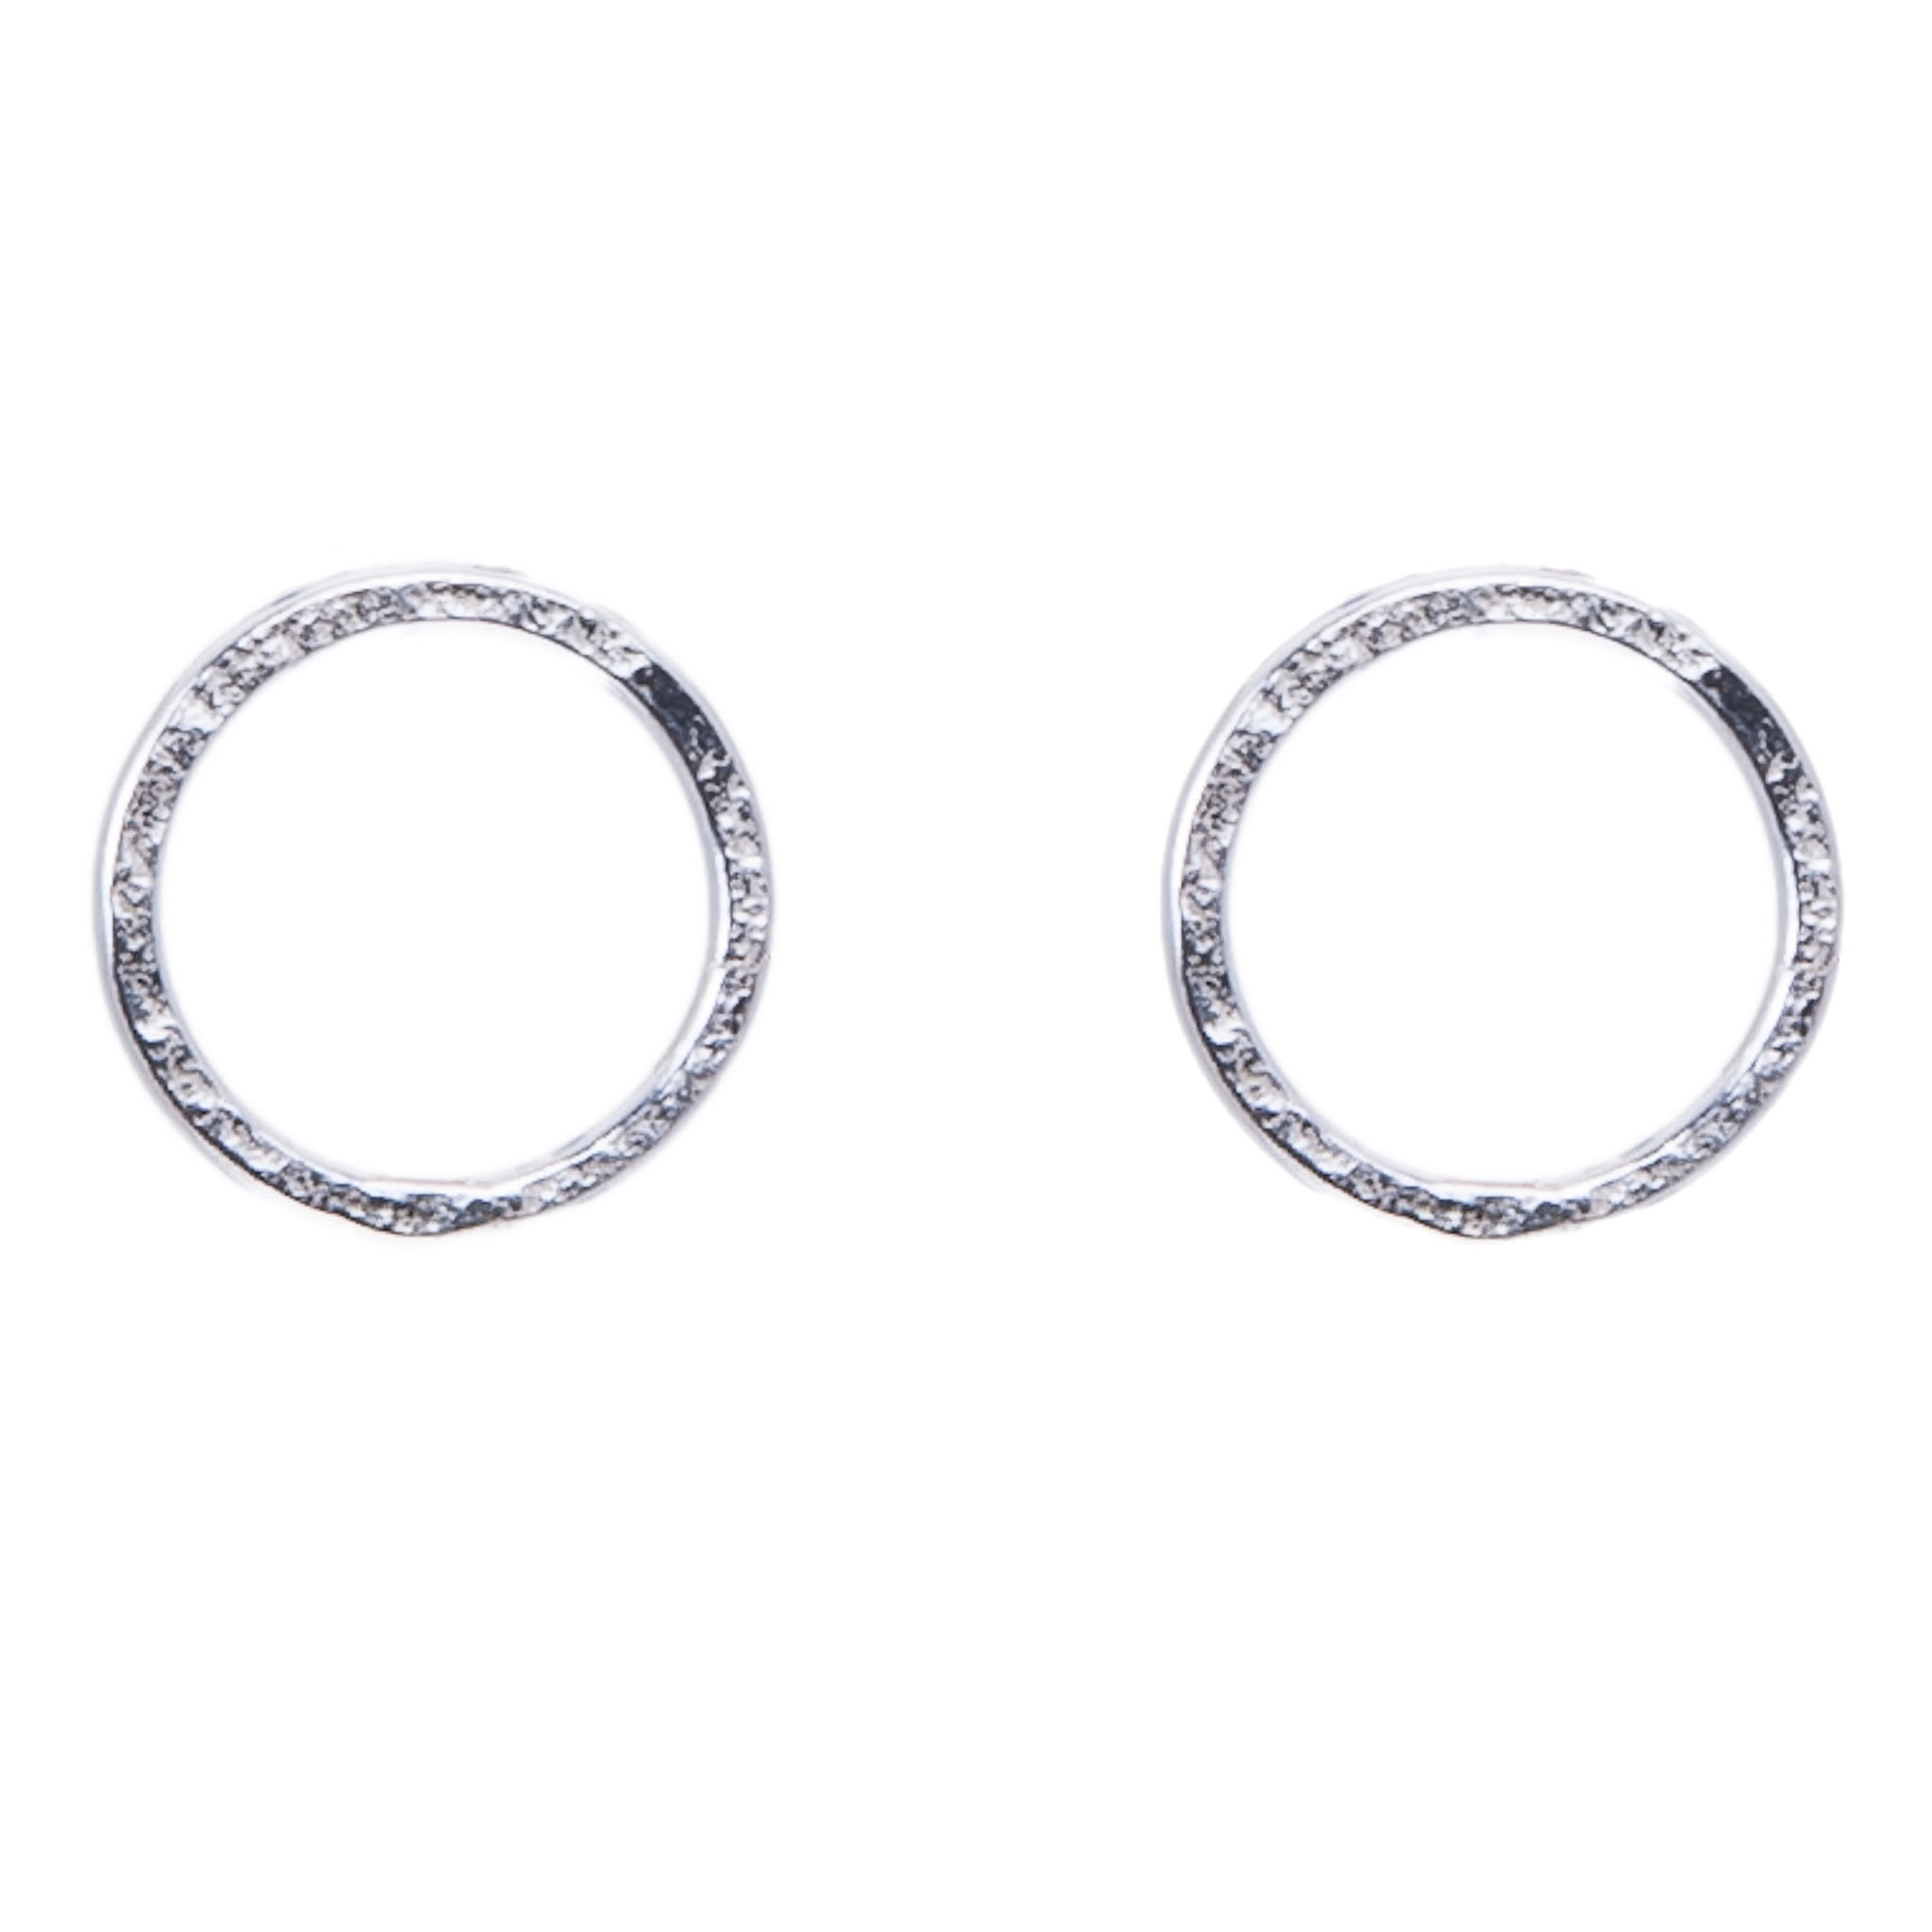 Silver Circle Stud Earrings|Matte Hammered|Handmade Designer Jewellery|Tiny 00106